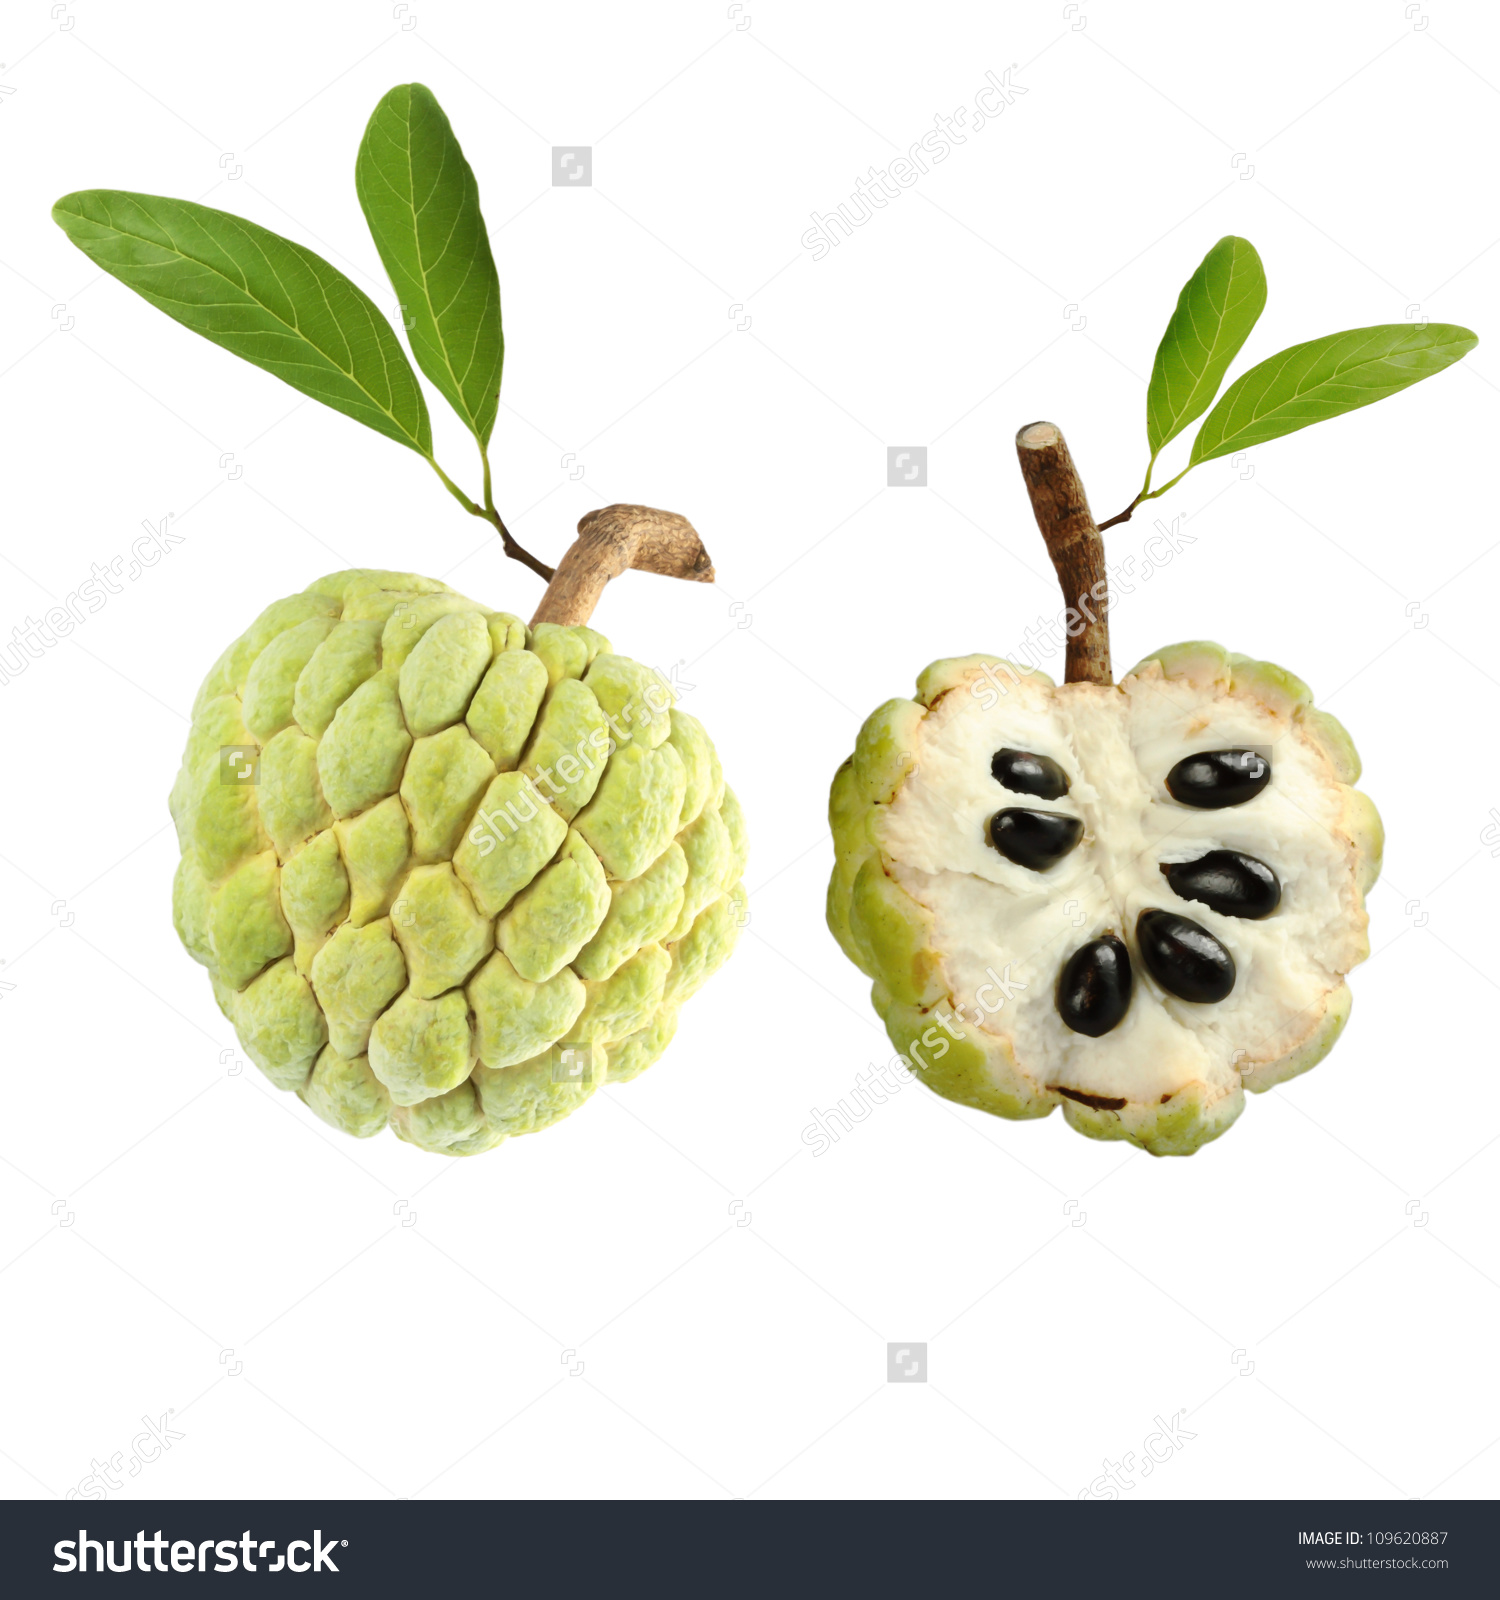 Custard Apple On White Background Stock Photo 109620887.